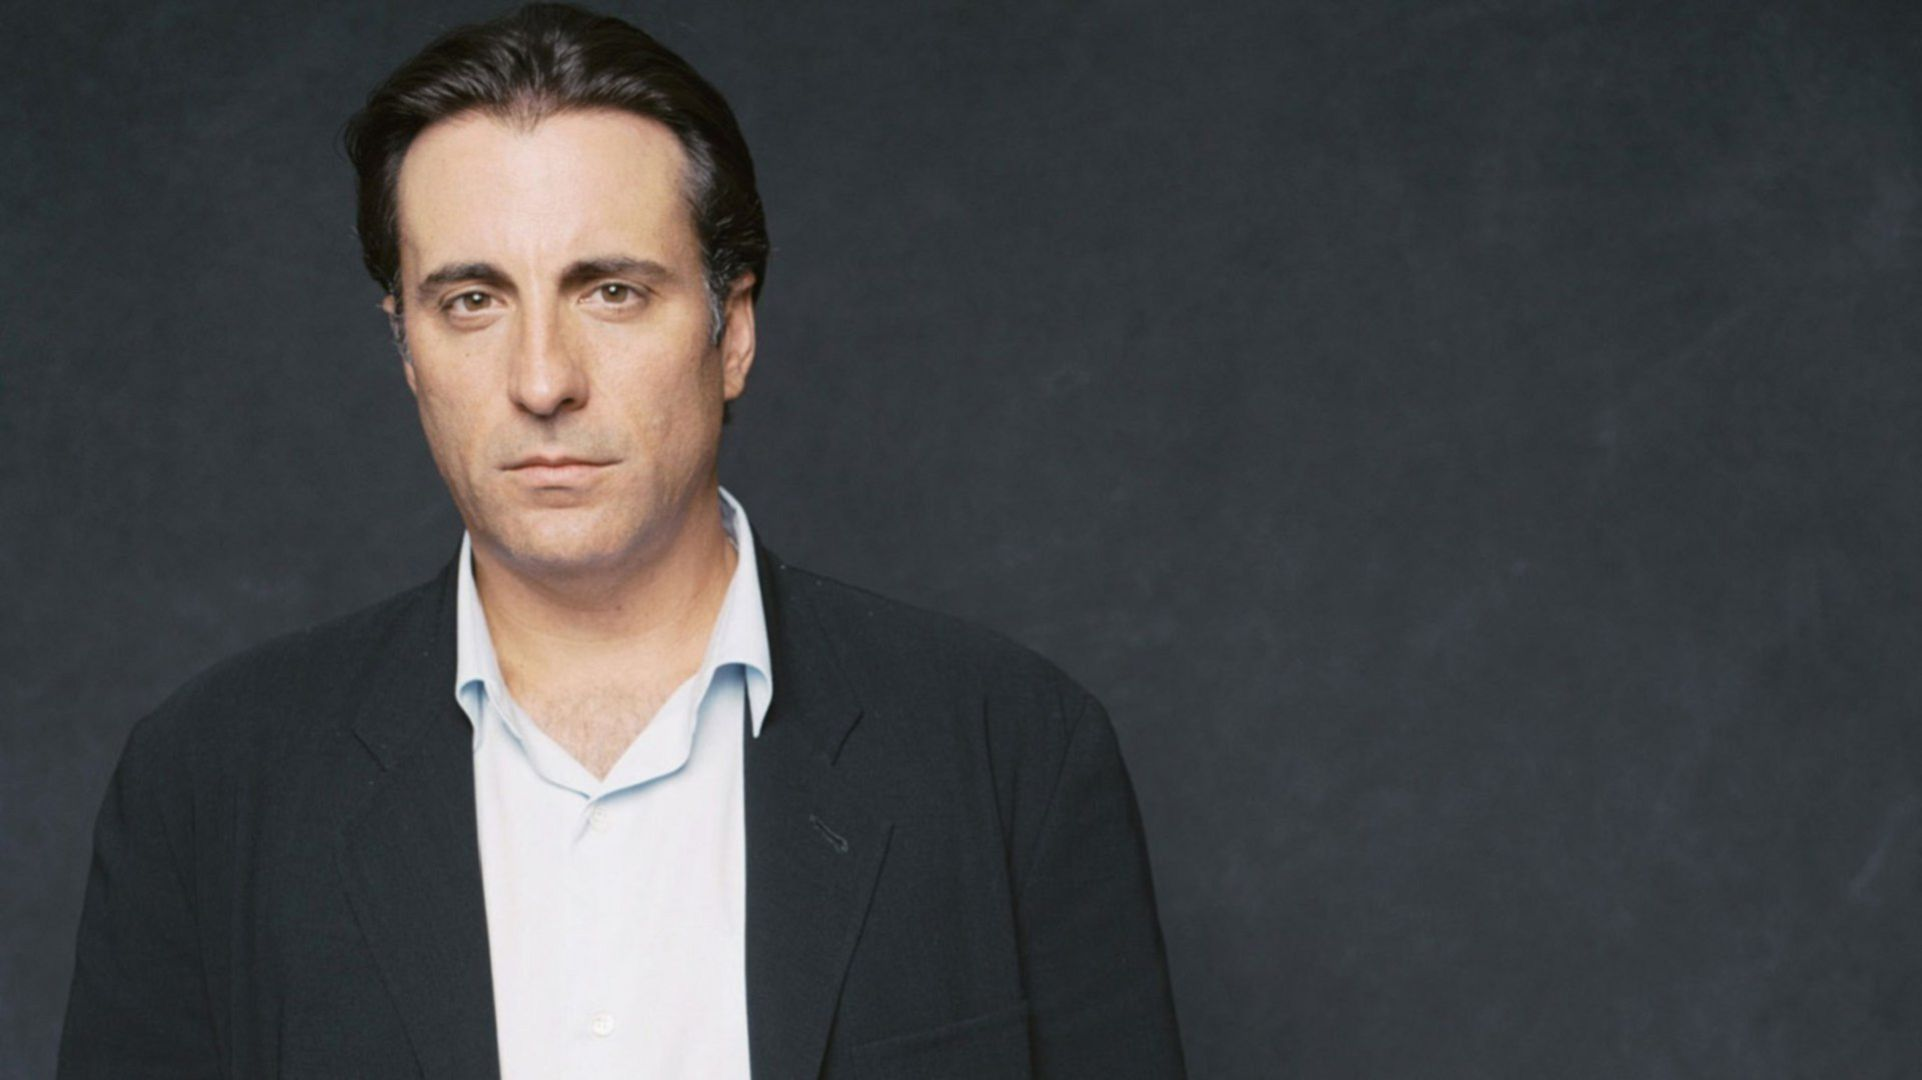 Andy Garcia In High Resolution